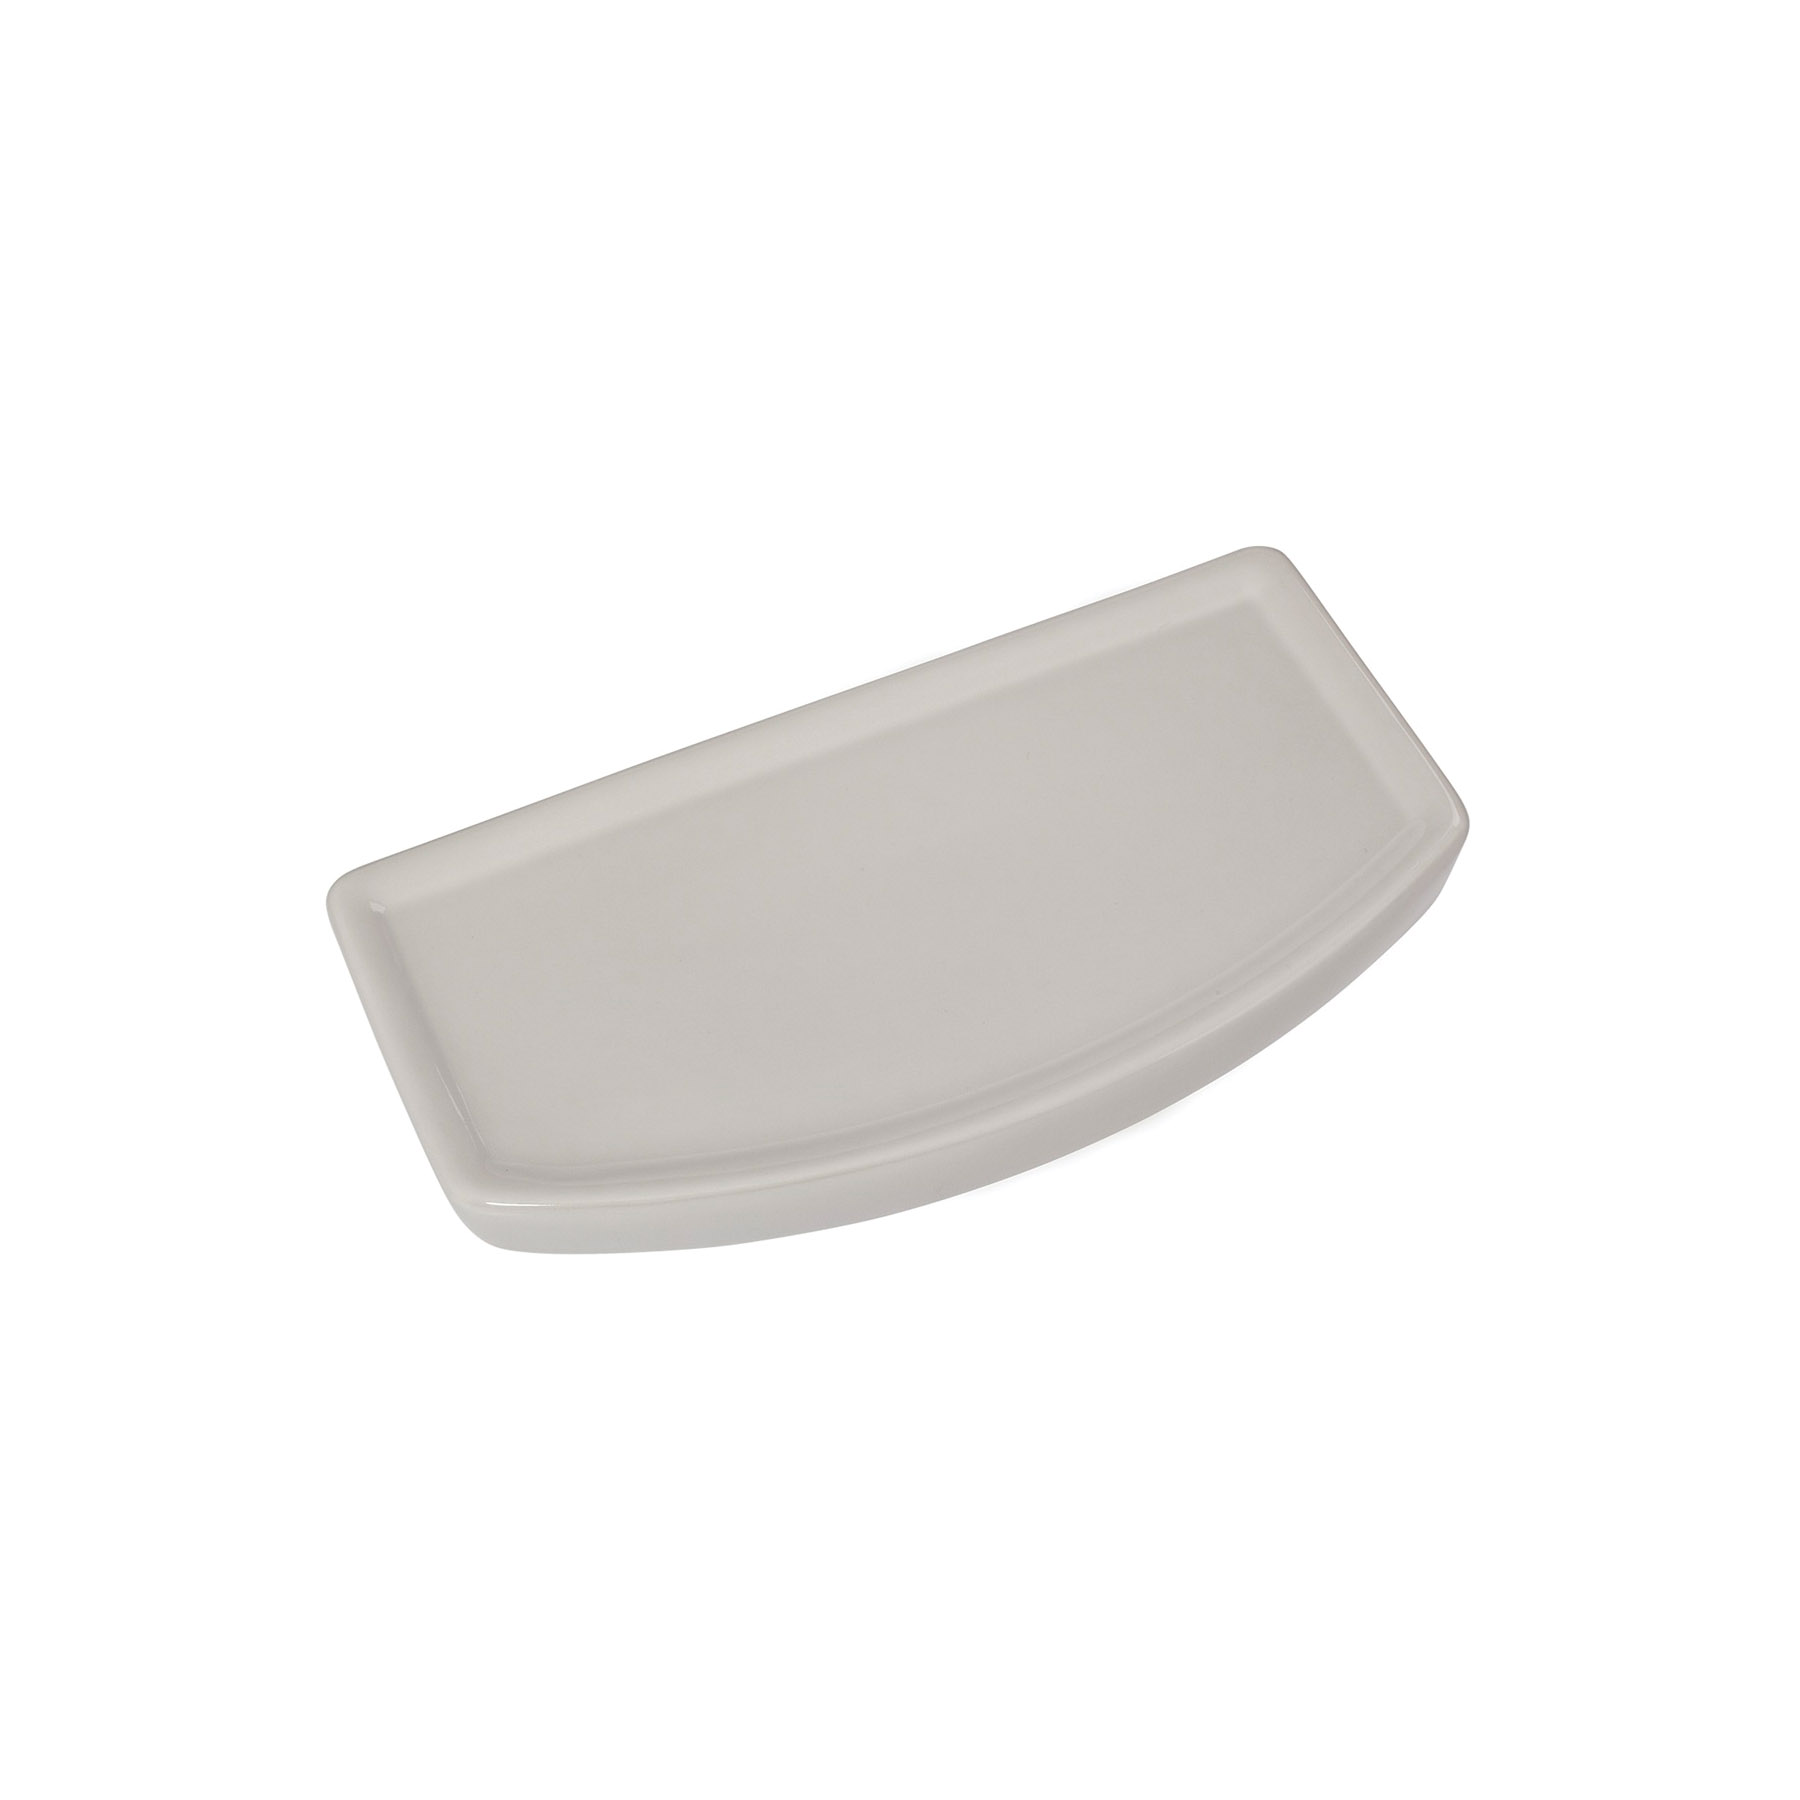 American Standard 735170-400.020 Champion® 4 Max Toilet Tank Lid, White